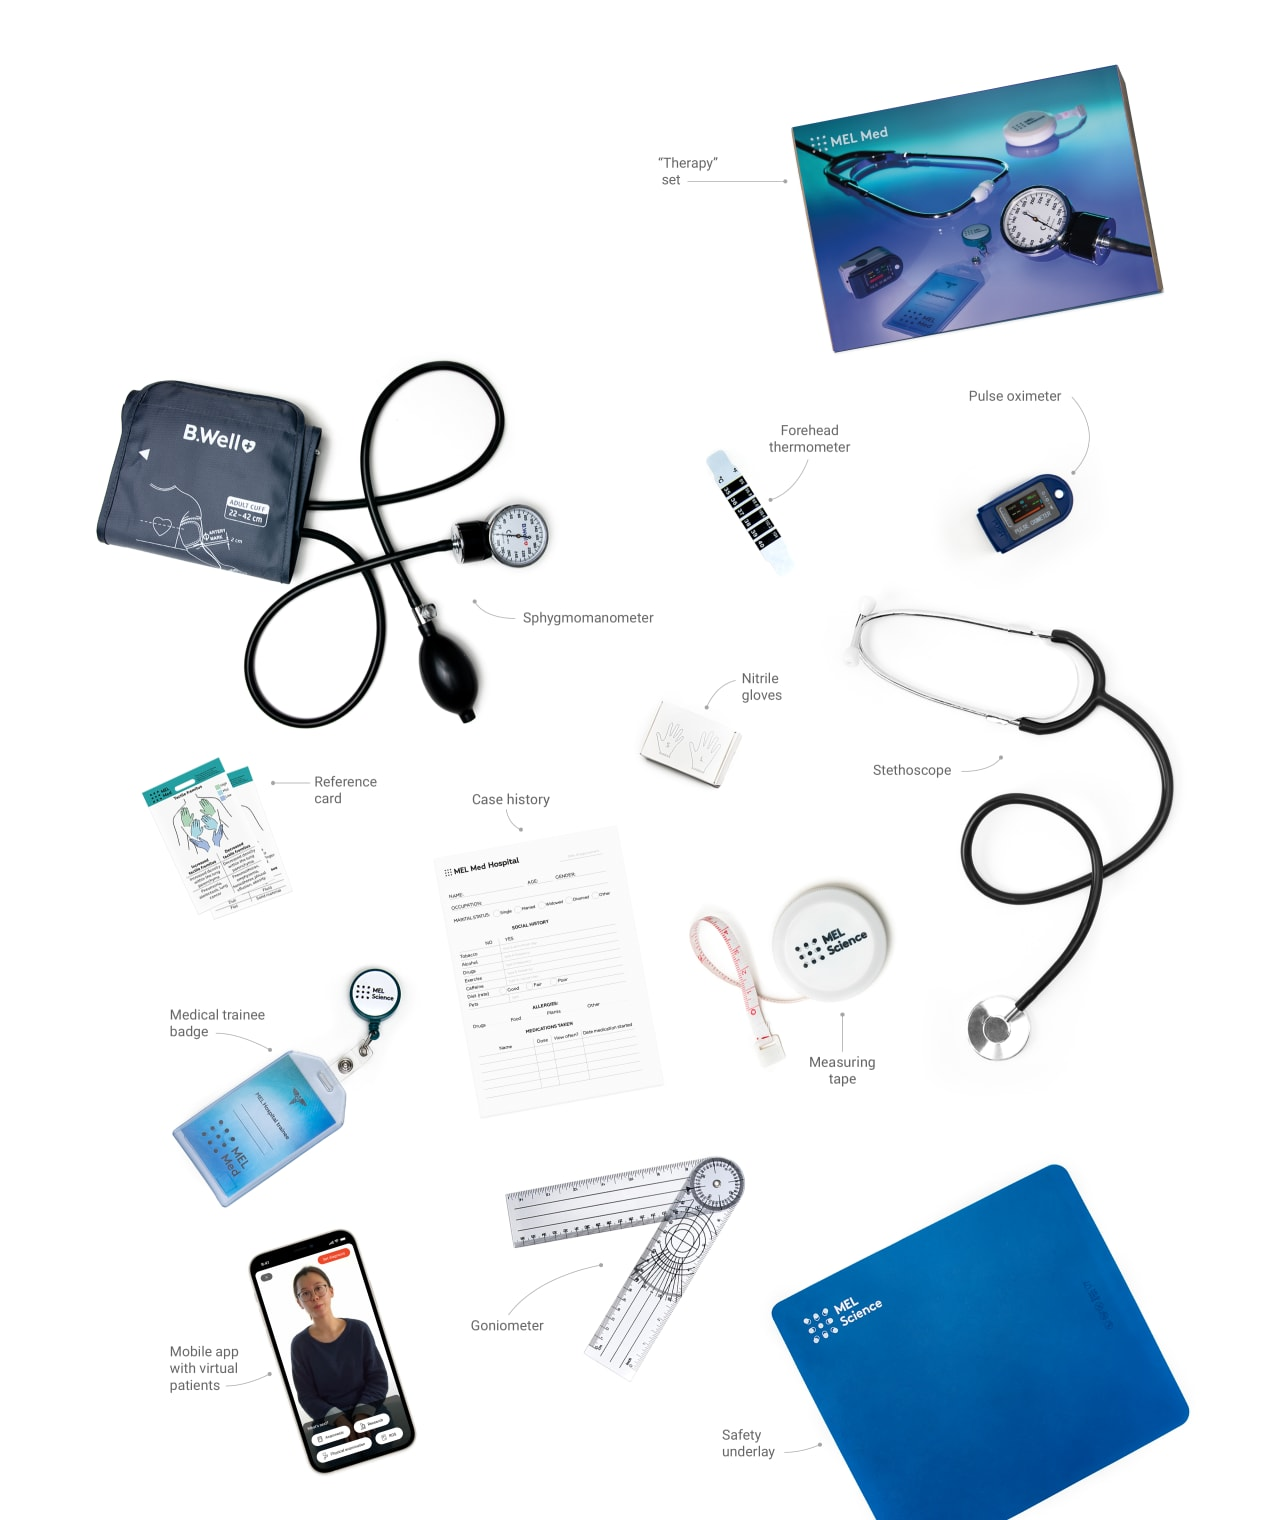 Therapy set equipment